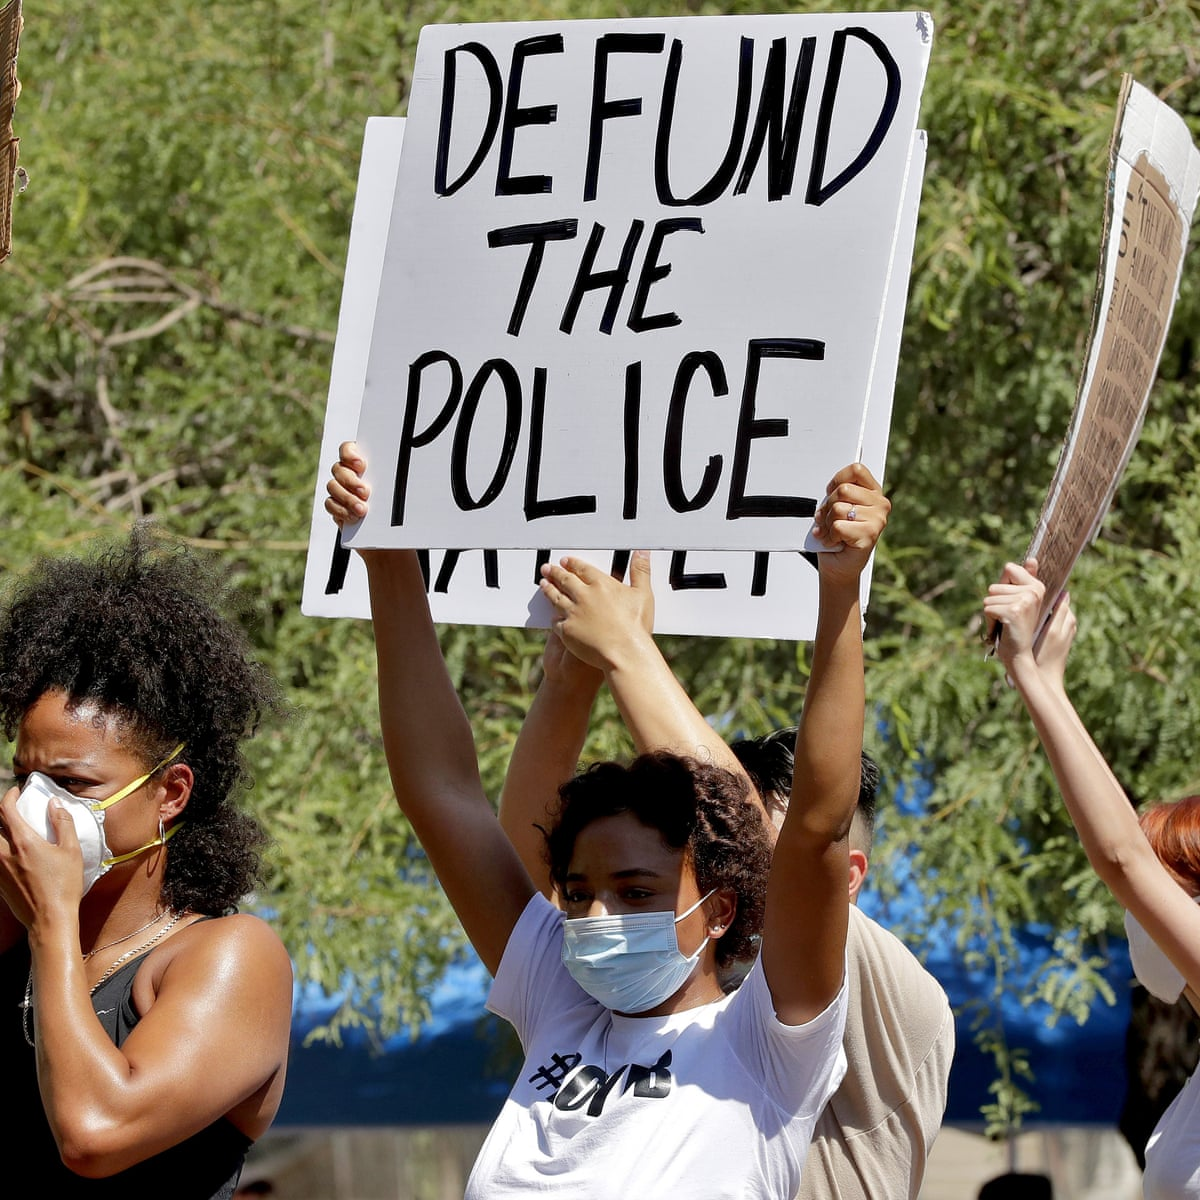 Movement to defund police gains 'unprecedented' support across US | US news | The Guardian